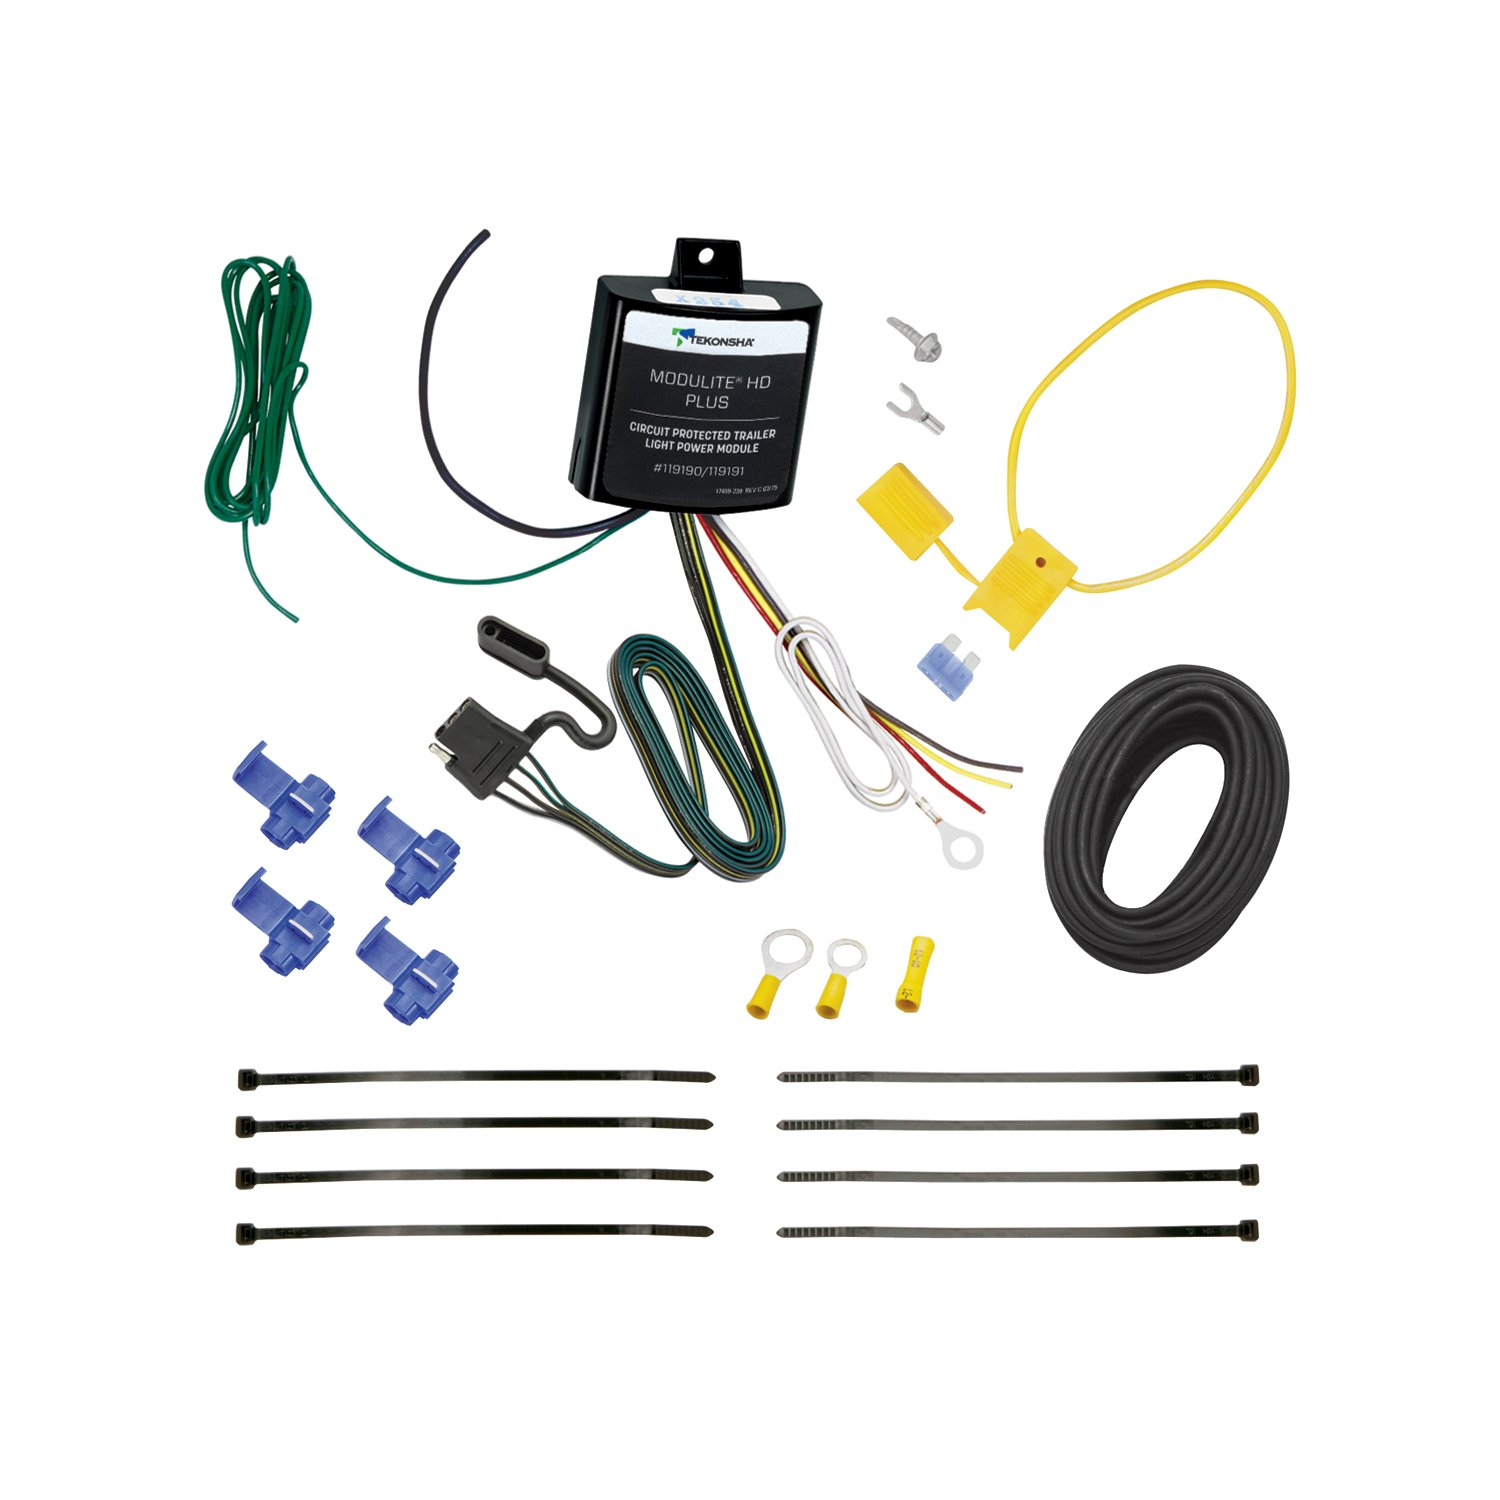 Tekonsha 119191 Modulite Hd Plus Protector With 2009 Bmw X5 Trailer Wiring Harness Integrated Circuit And Overload Protection Light Power Module Kit Automotive